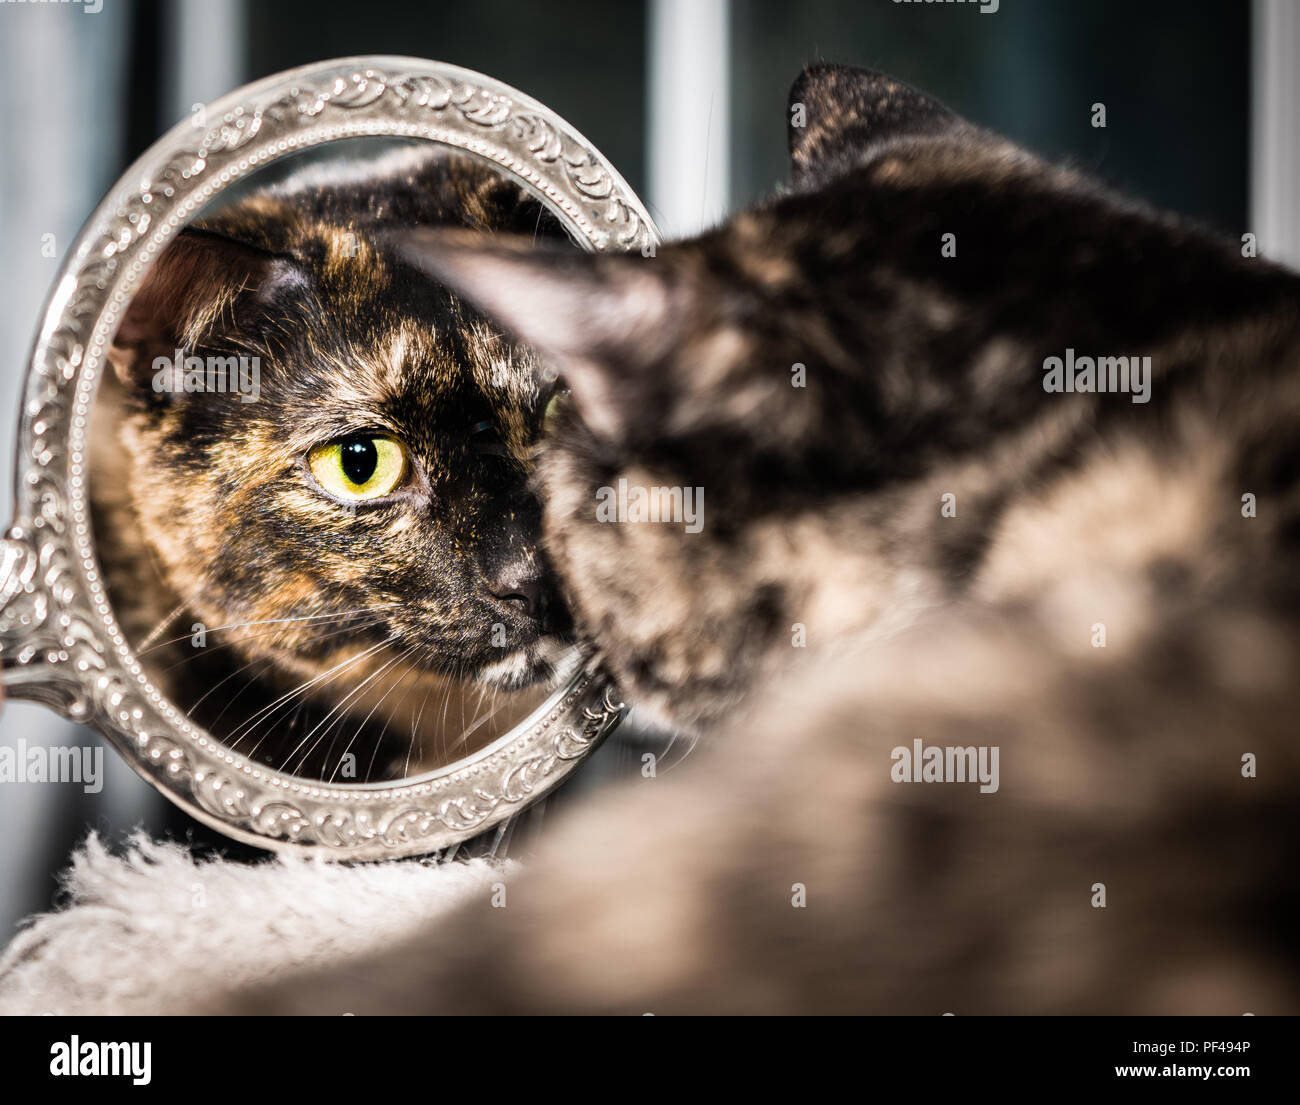 A beautiful tortoiseshell cat looks at herself in a mirror - Stock Image